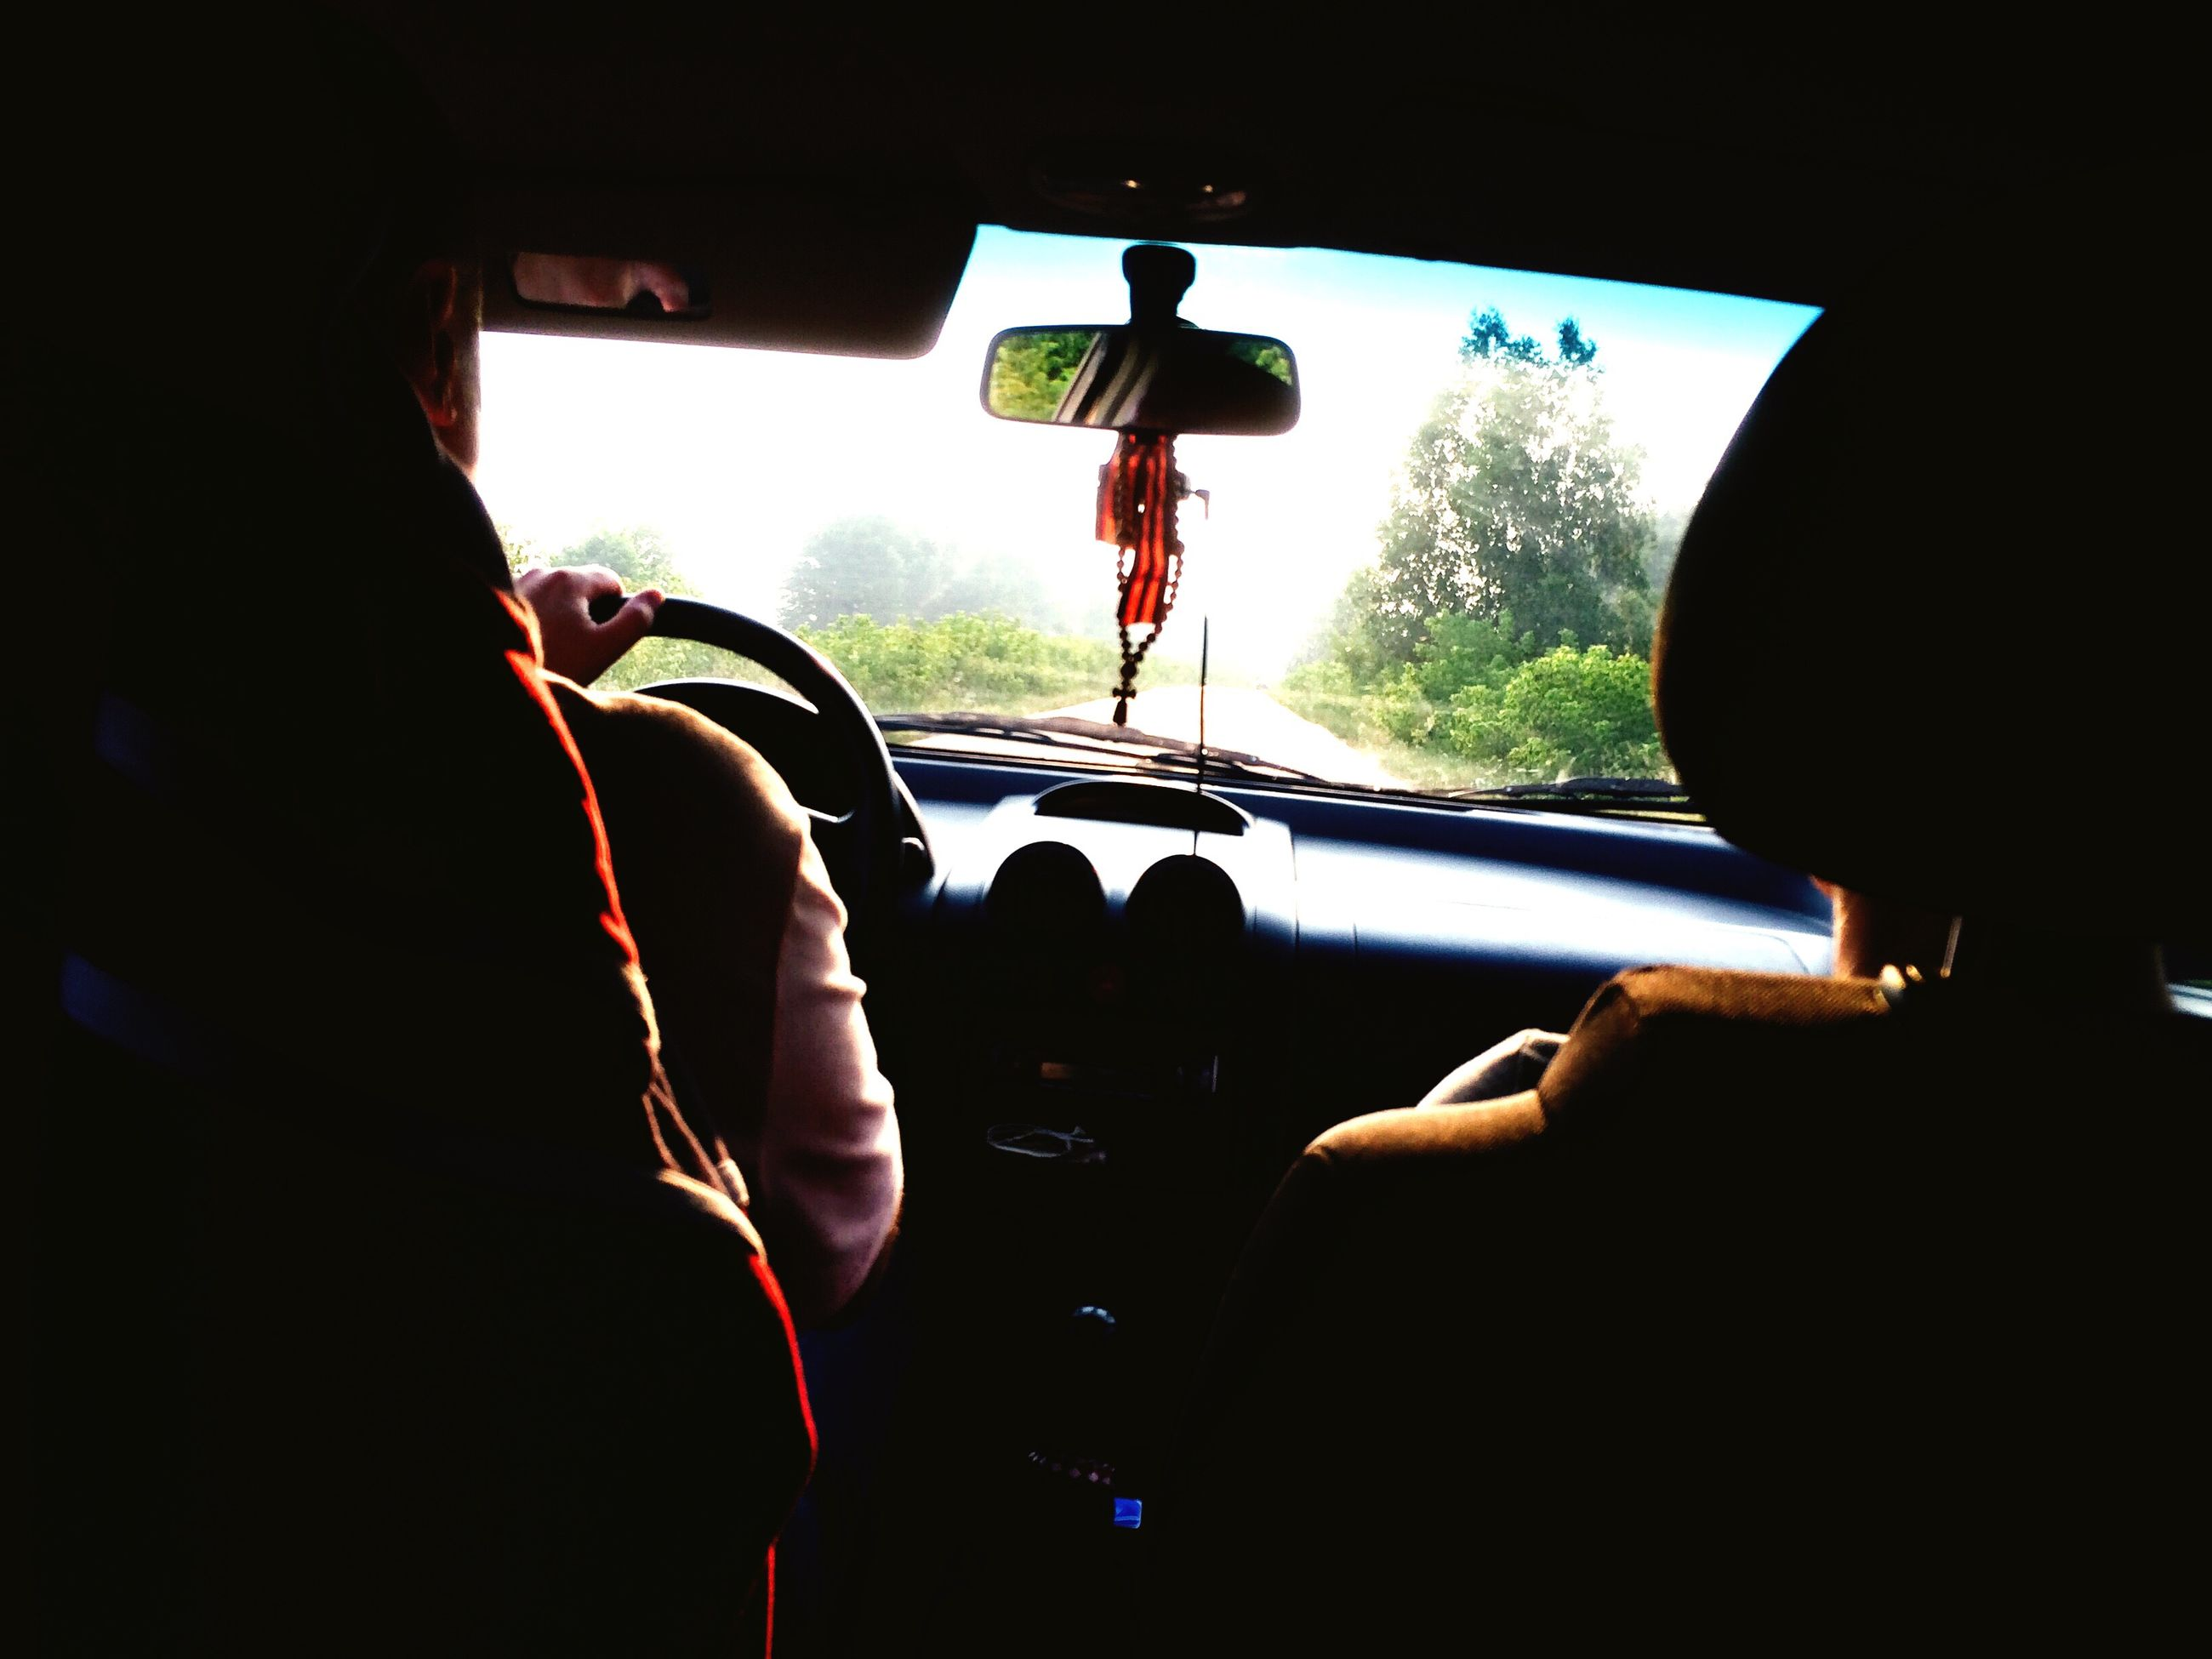 window, car interior, vehicle interior, indoors, silhouette, glass - material, car, transparent, mode of transport, transportation, windshield, land vehicle, men, driving, person, dark, holding, car point of view, day, multi colored, flying